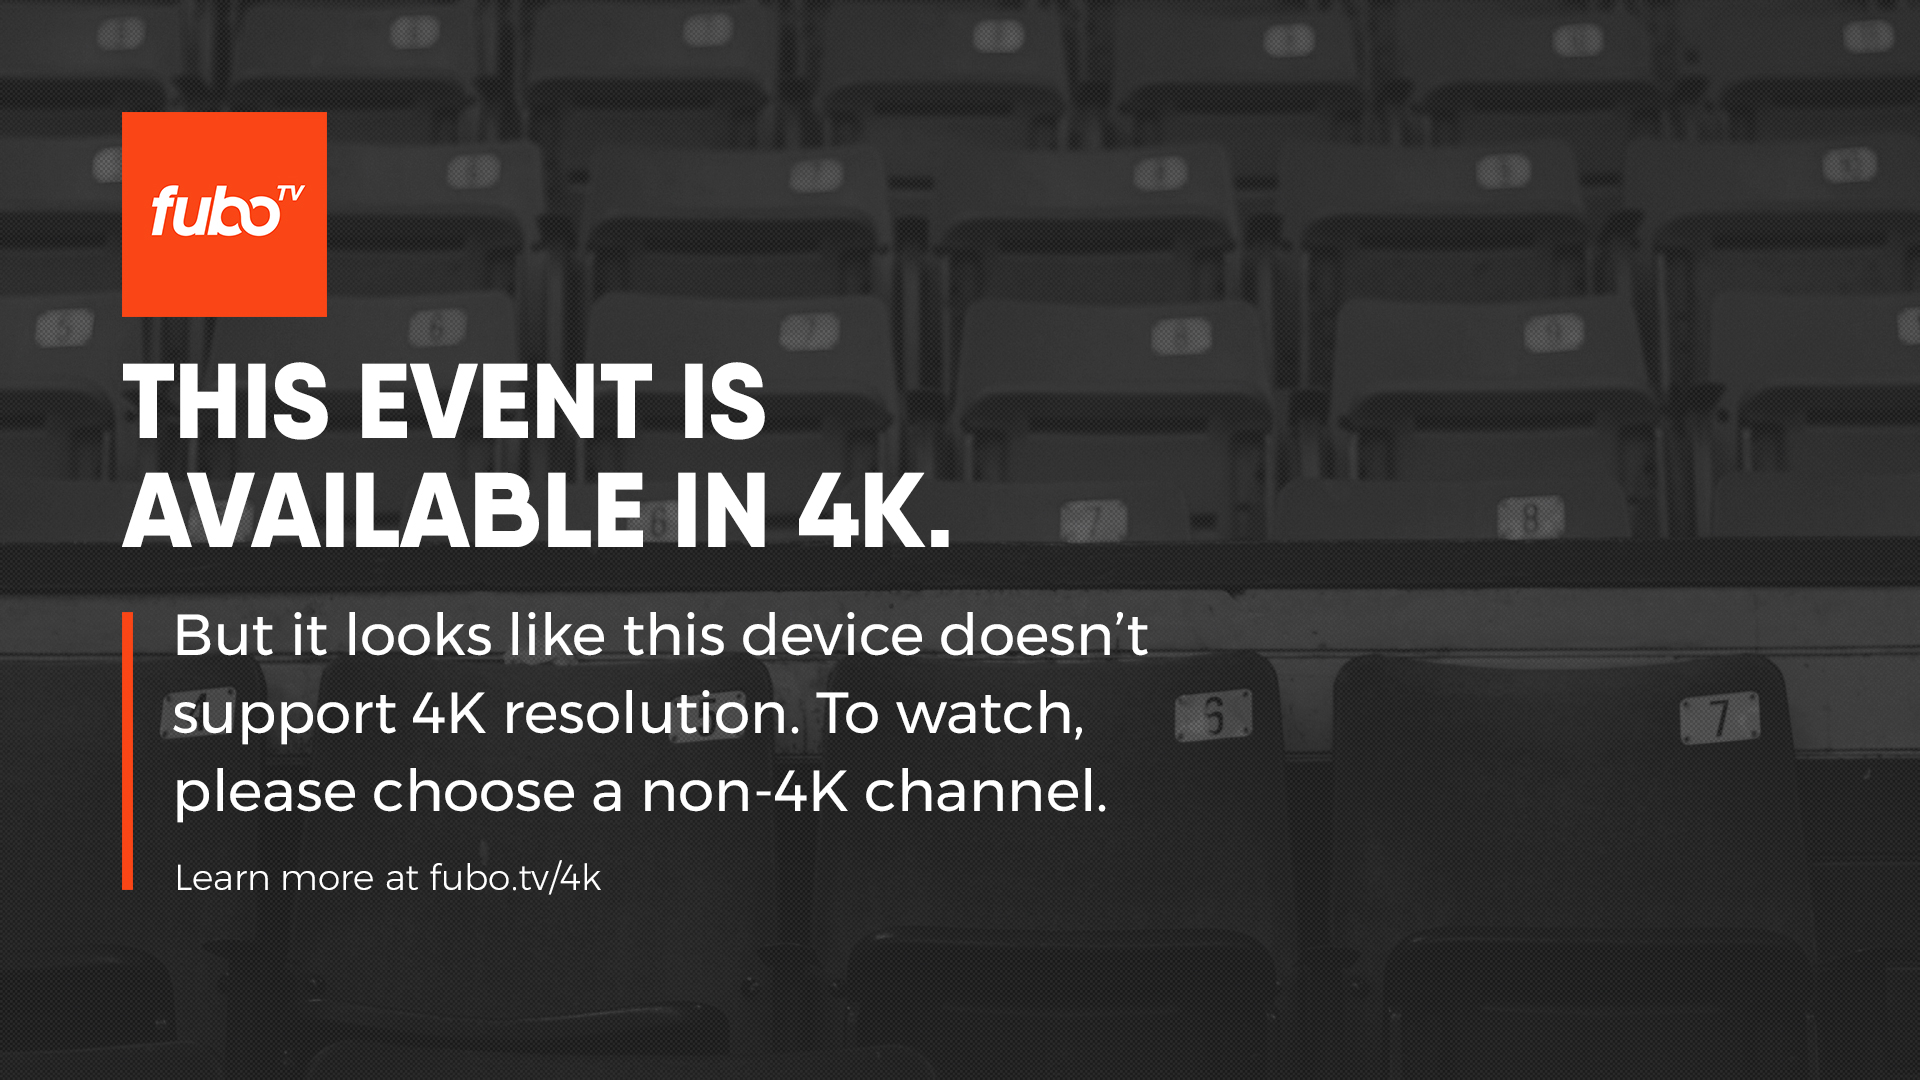 Does fuboTV offer any content in 4K/HDR? – Help Center